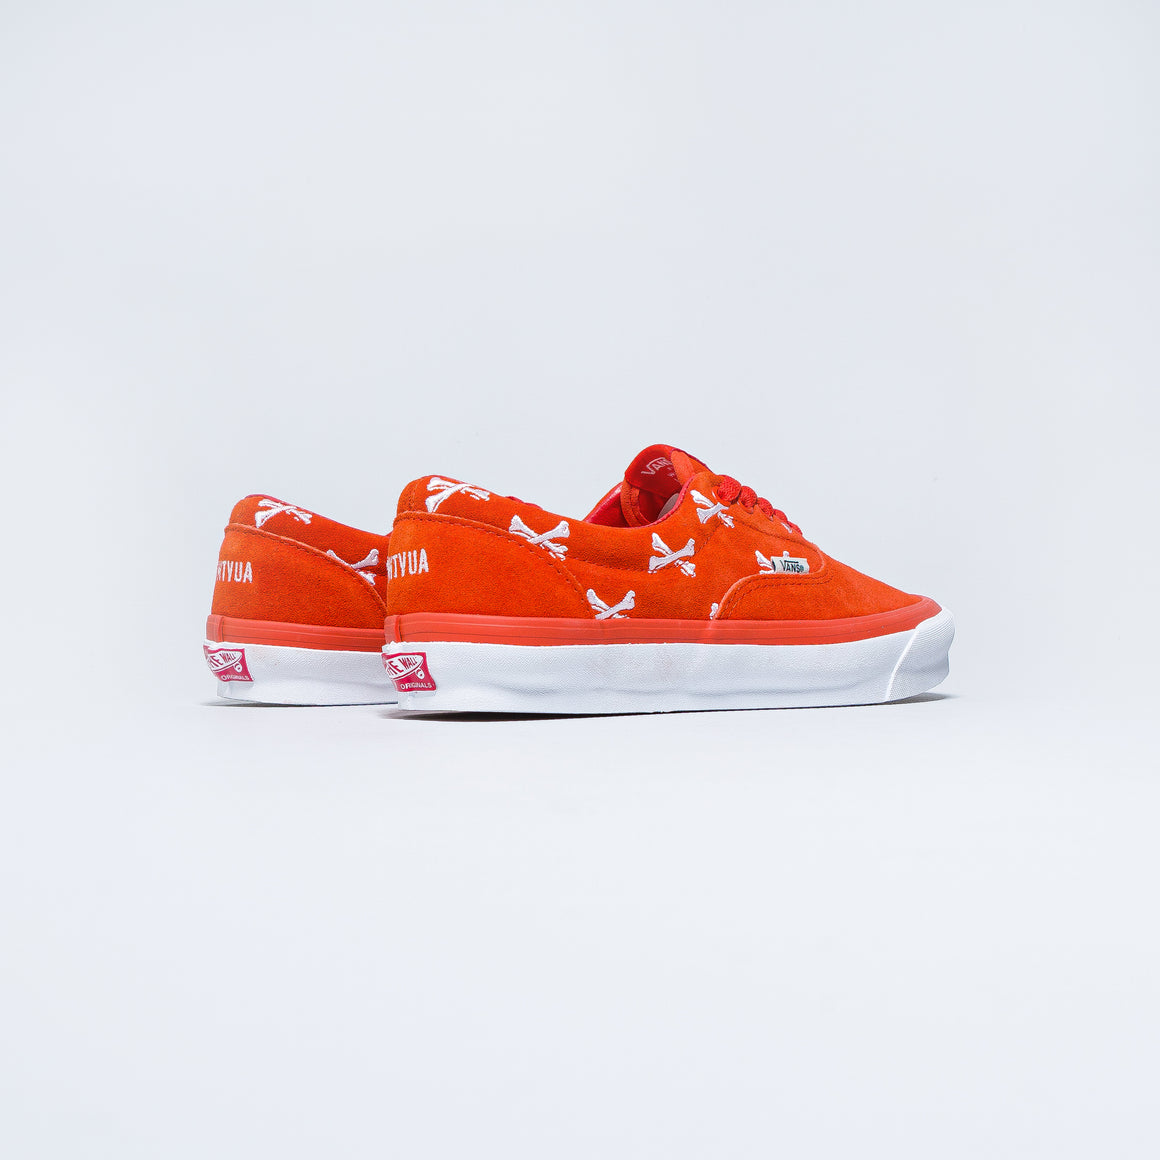 Vans - OG Era LX x Wtaps - Bones/Orange - Up There